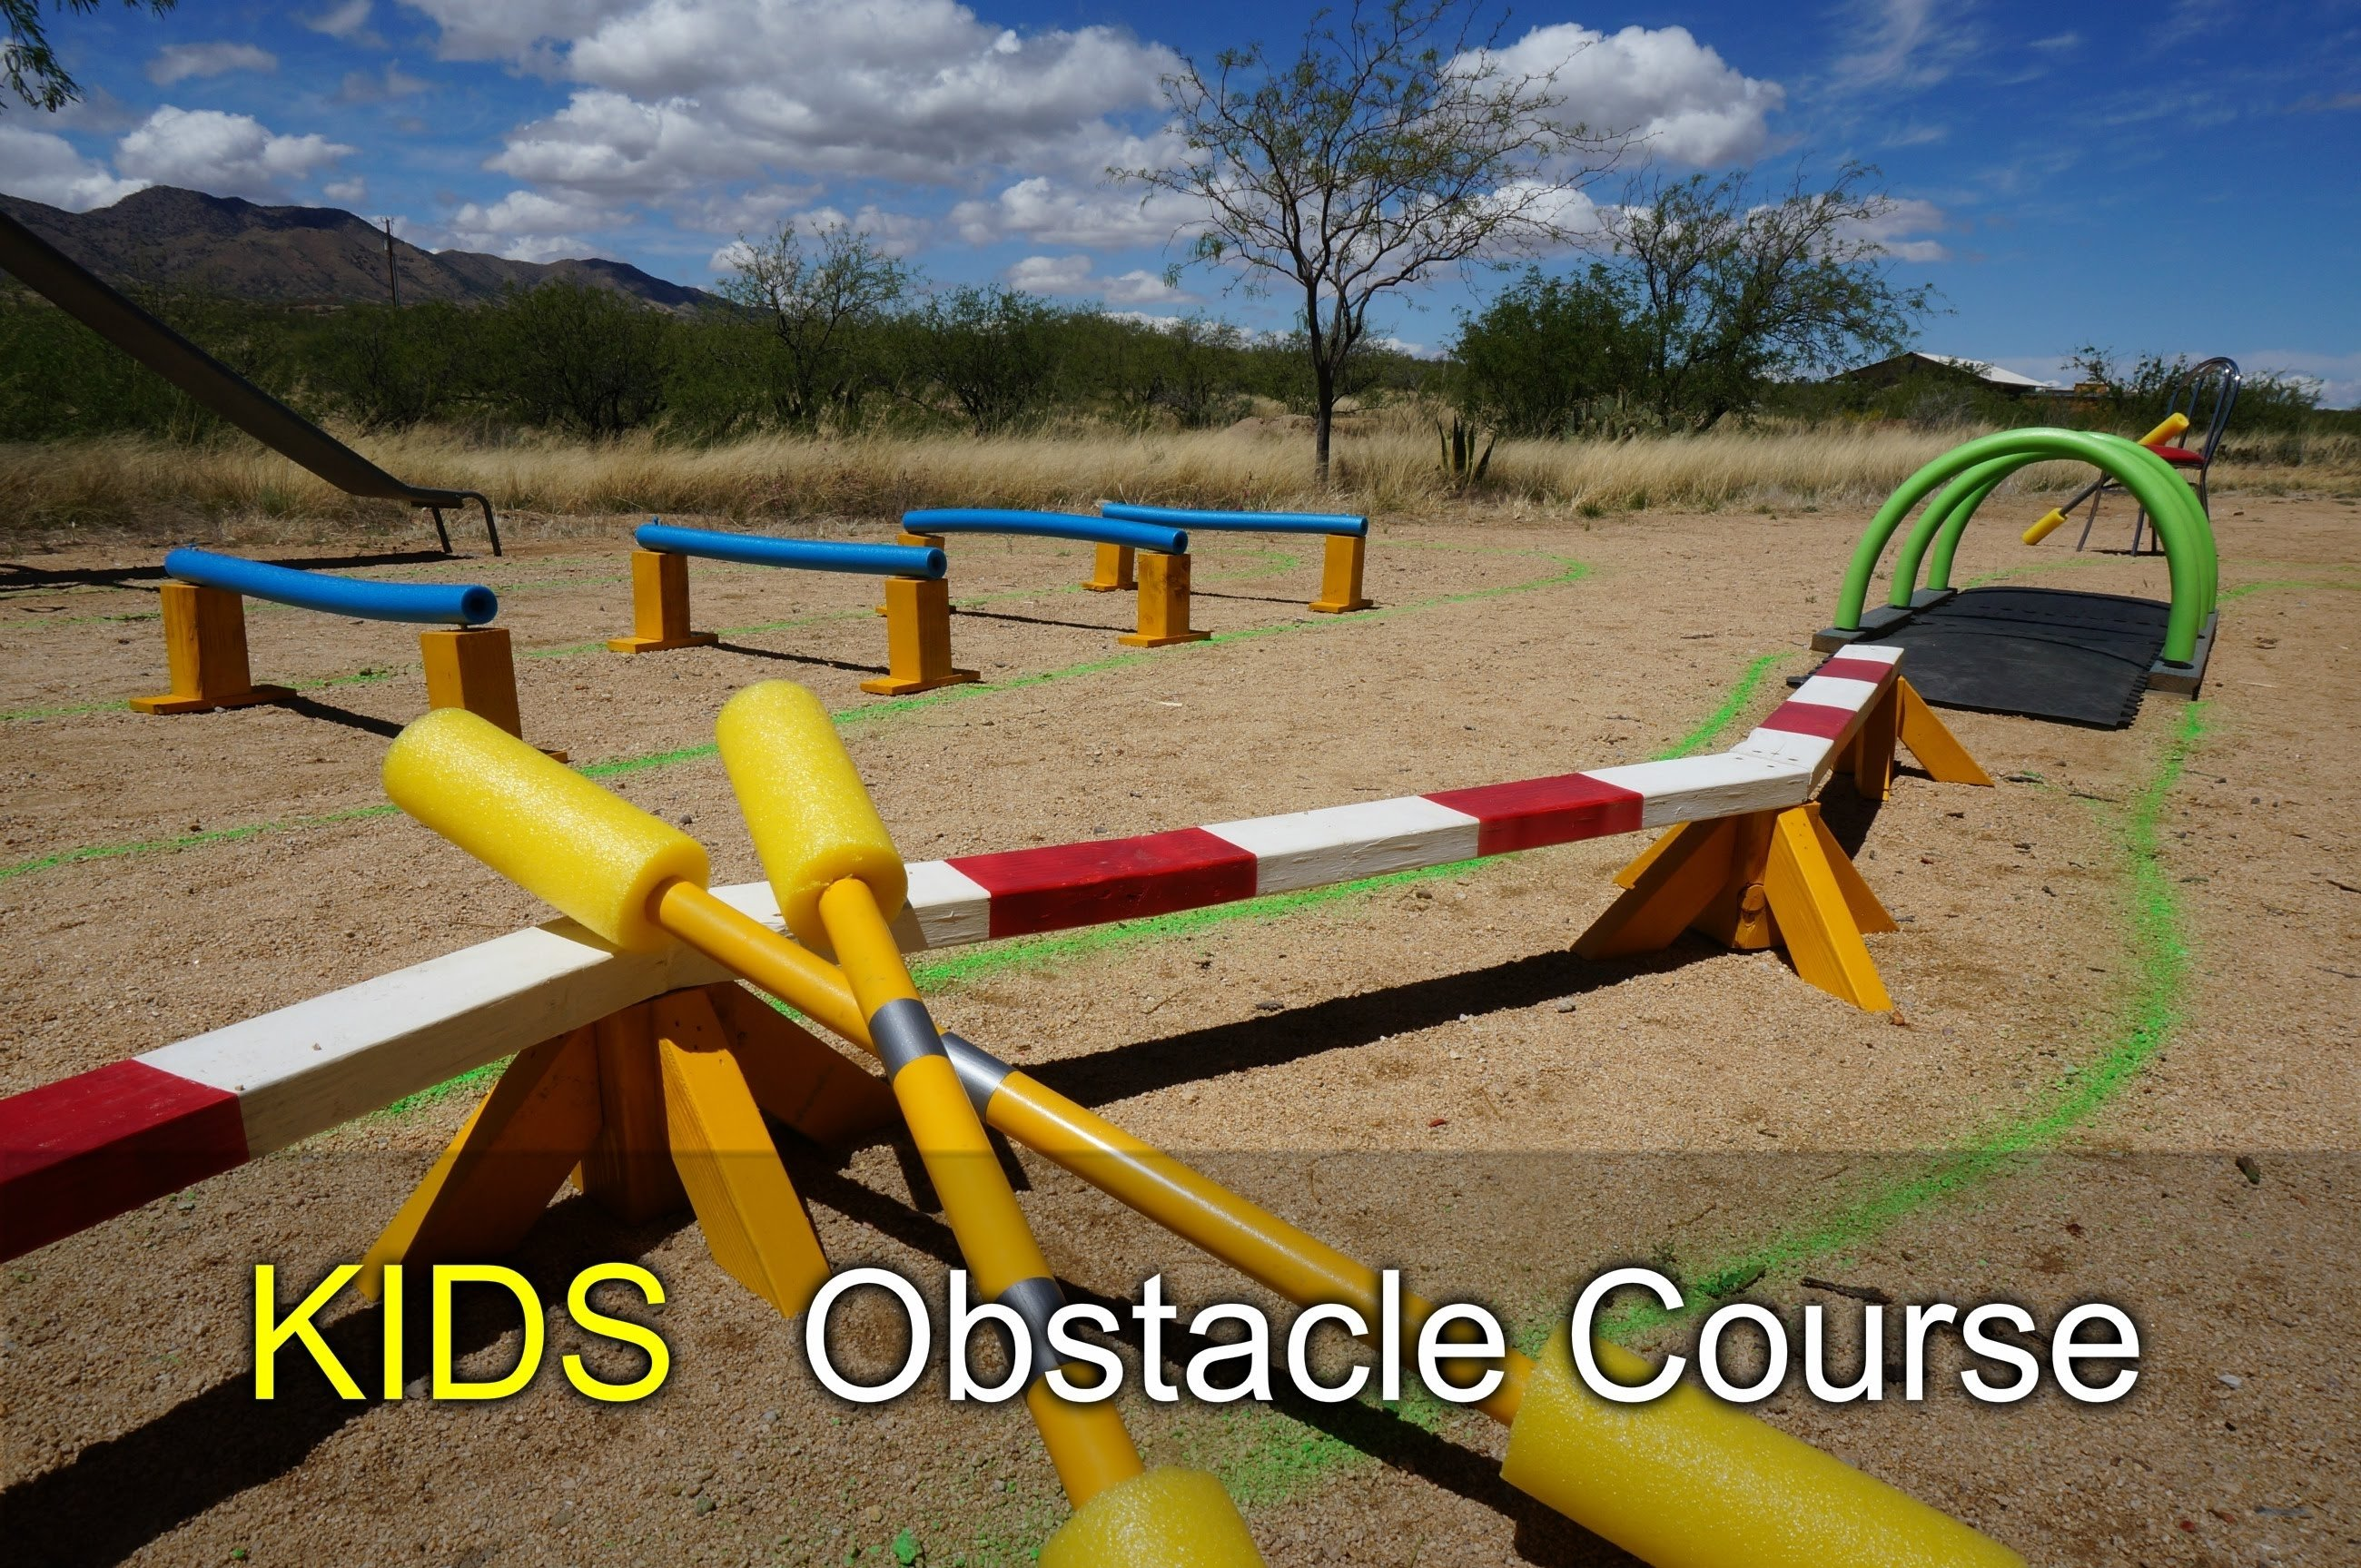 10 Fantastic Fun Obstacle Course Ideas For Adults kids obstacle course how to with scrap wood and pool noodles youtube 2020